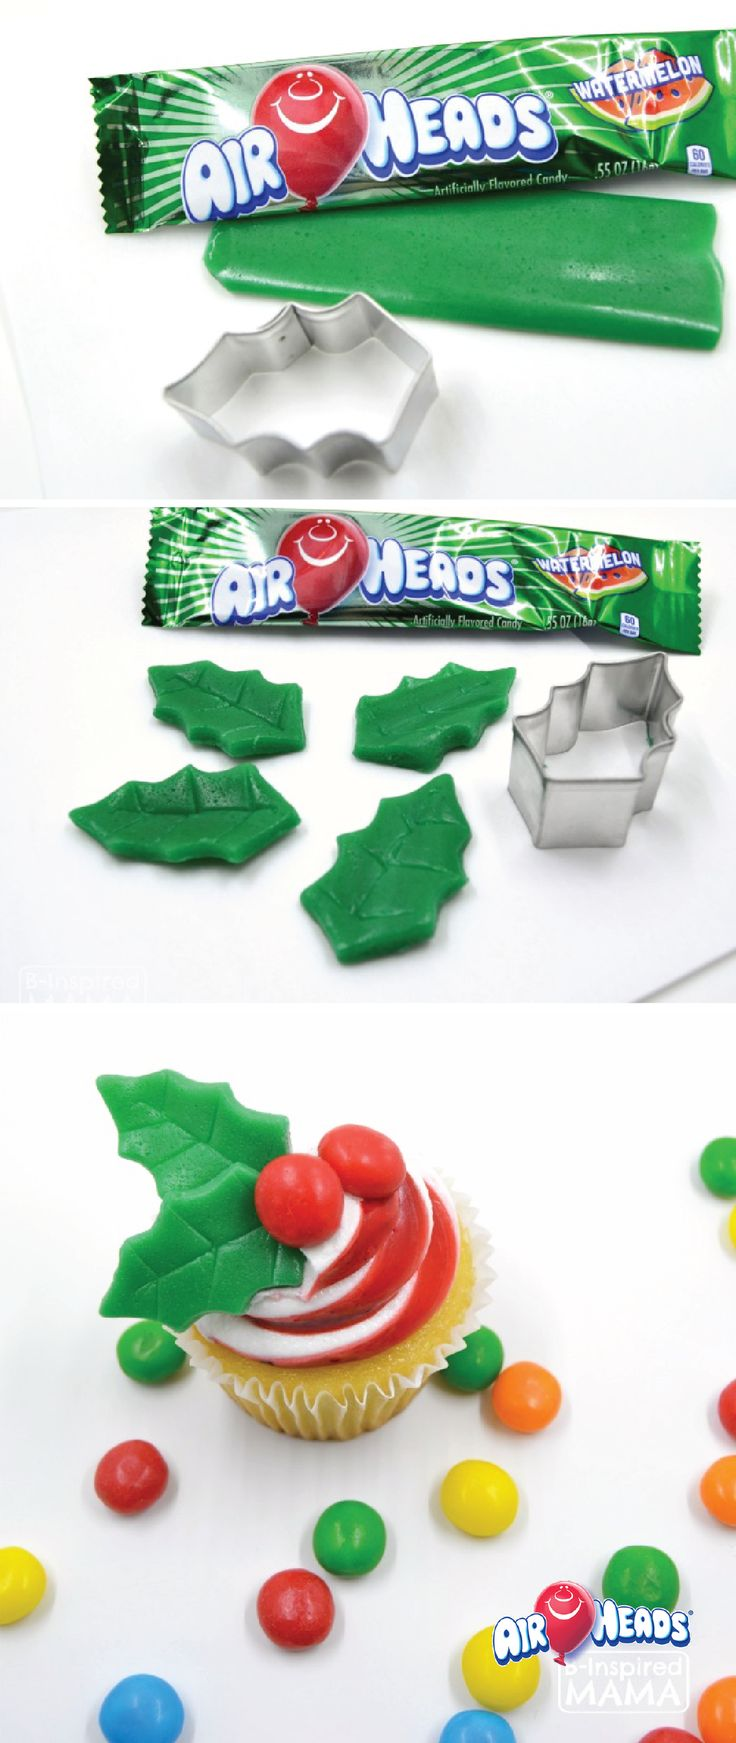 It is simple to craft and create these Christmas Holly Cupcake Toppers! Decorate your holiday dessert table with your kid's favorite candy, Airheads! These simple treats are easily cut and molded into unique shapes – perfect for dessert decorating.